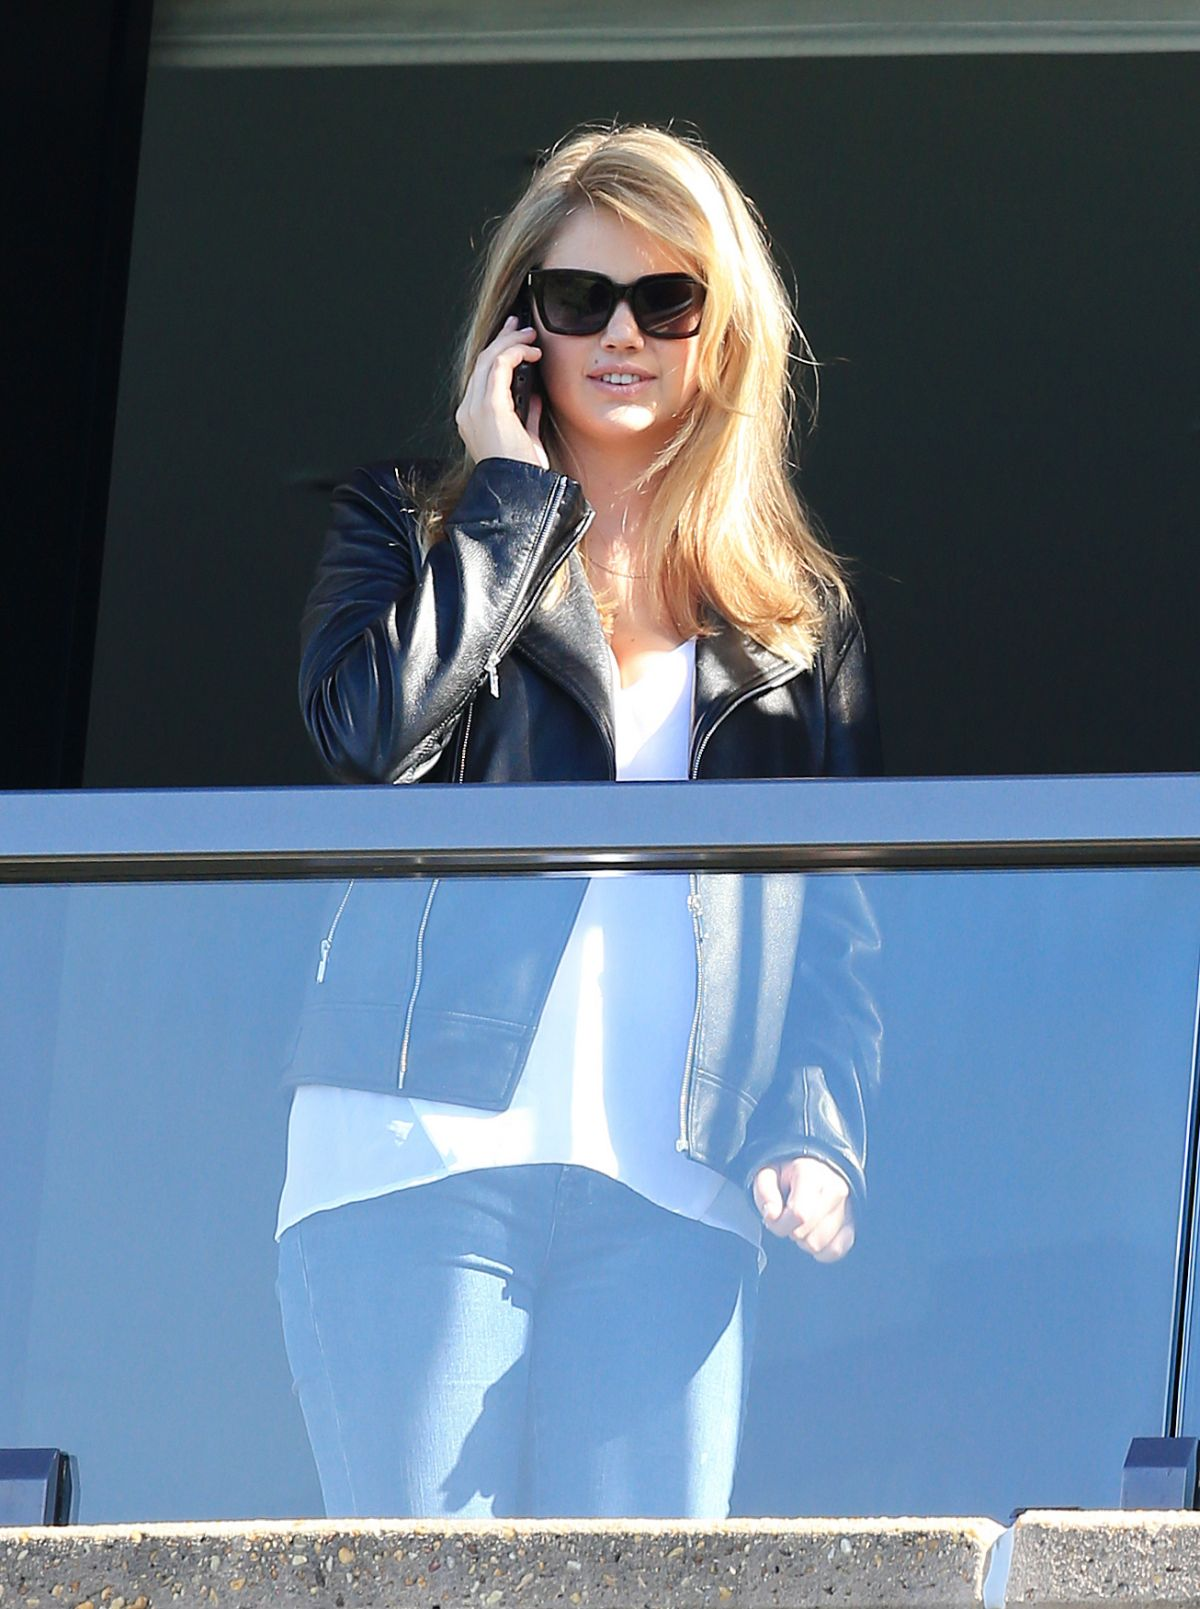 Kate upton dating in Sydney